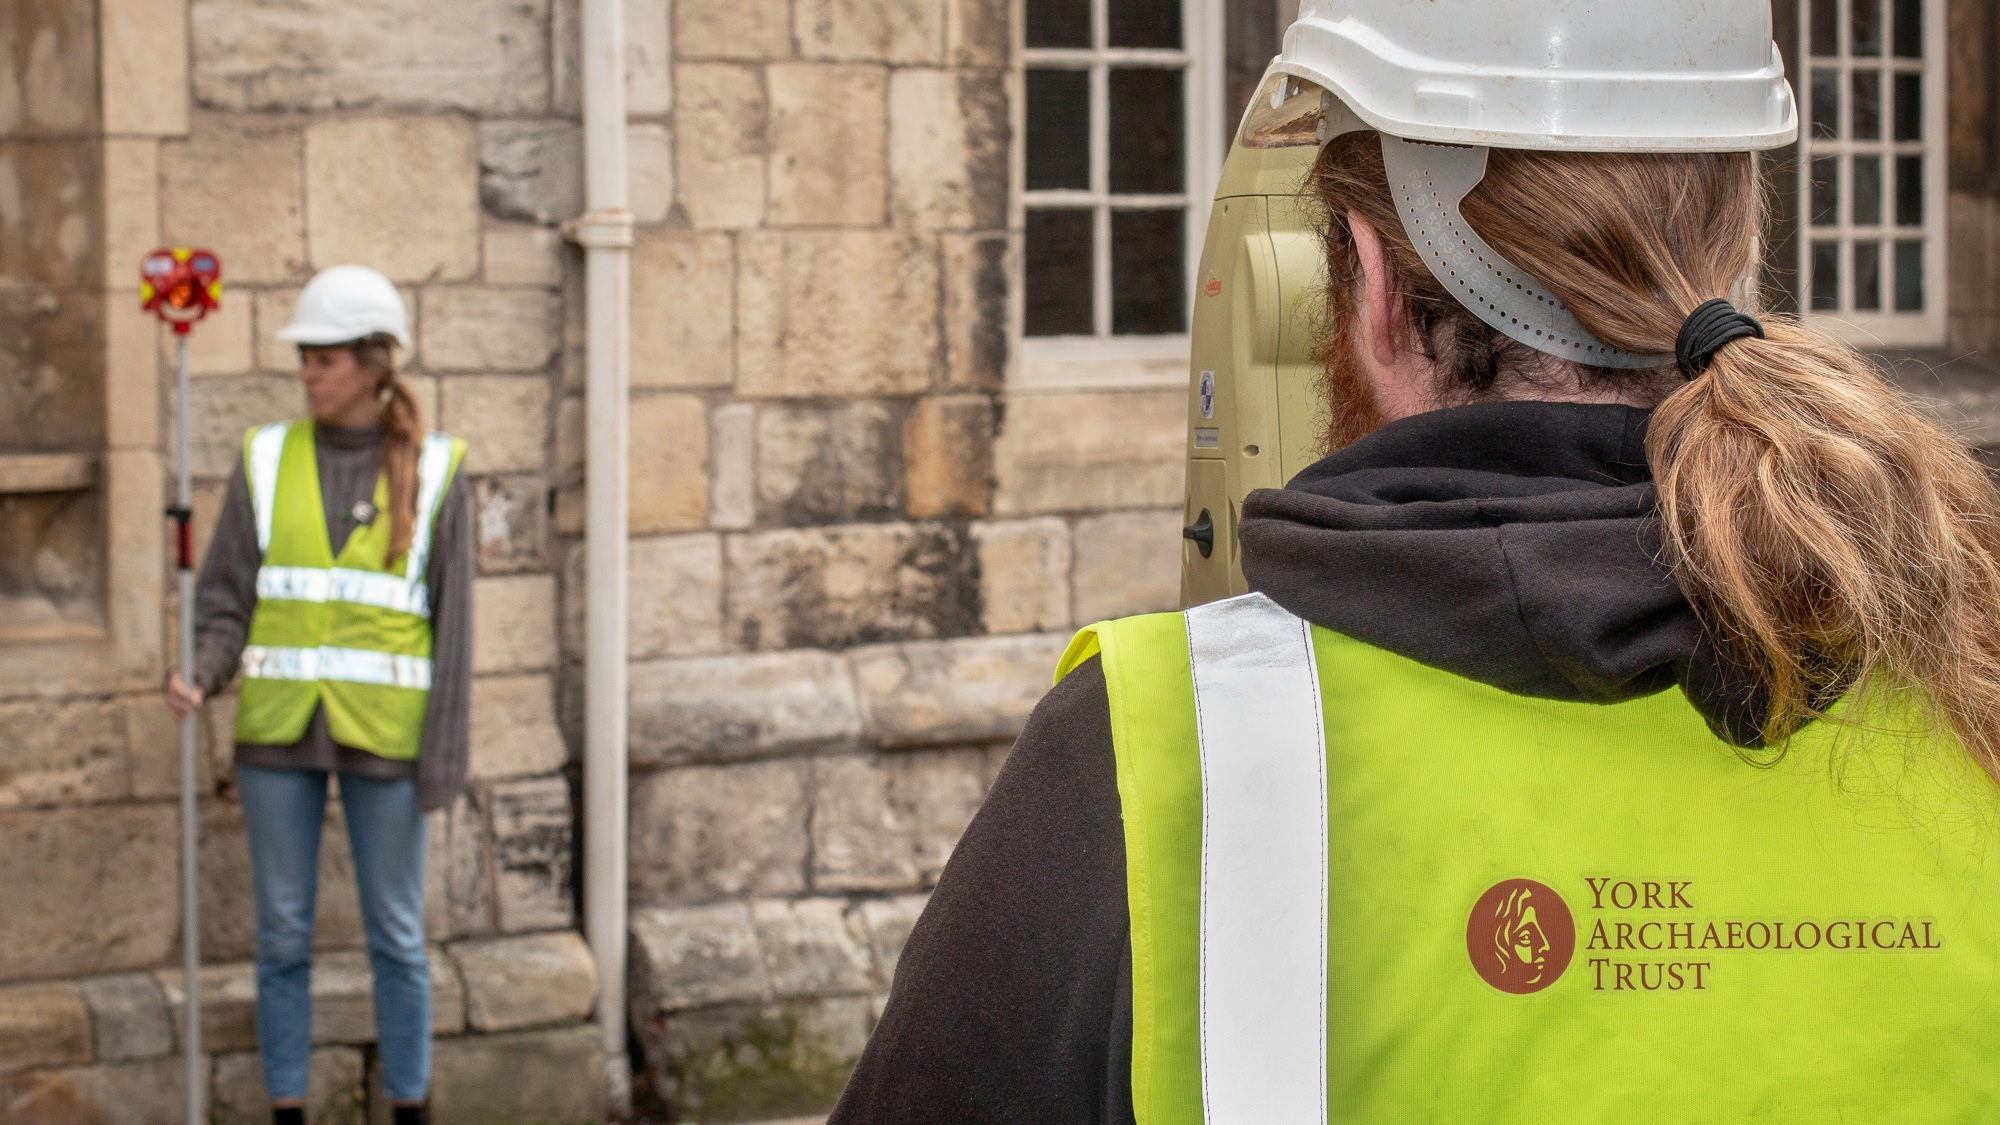 Consultancy - York Archaeological Trust has provided advice to clients and partners across various sectors for many years. Early engagement in any project will enable an assessment of any potential project risks involving archaeology.More information →